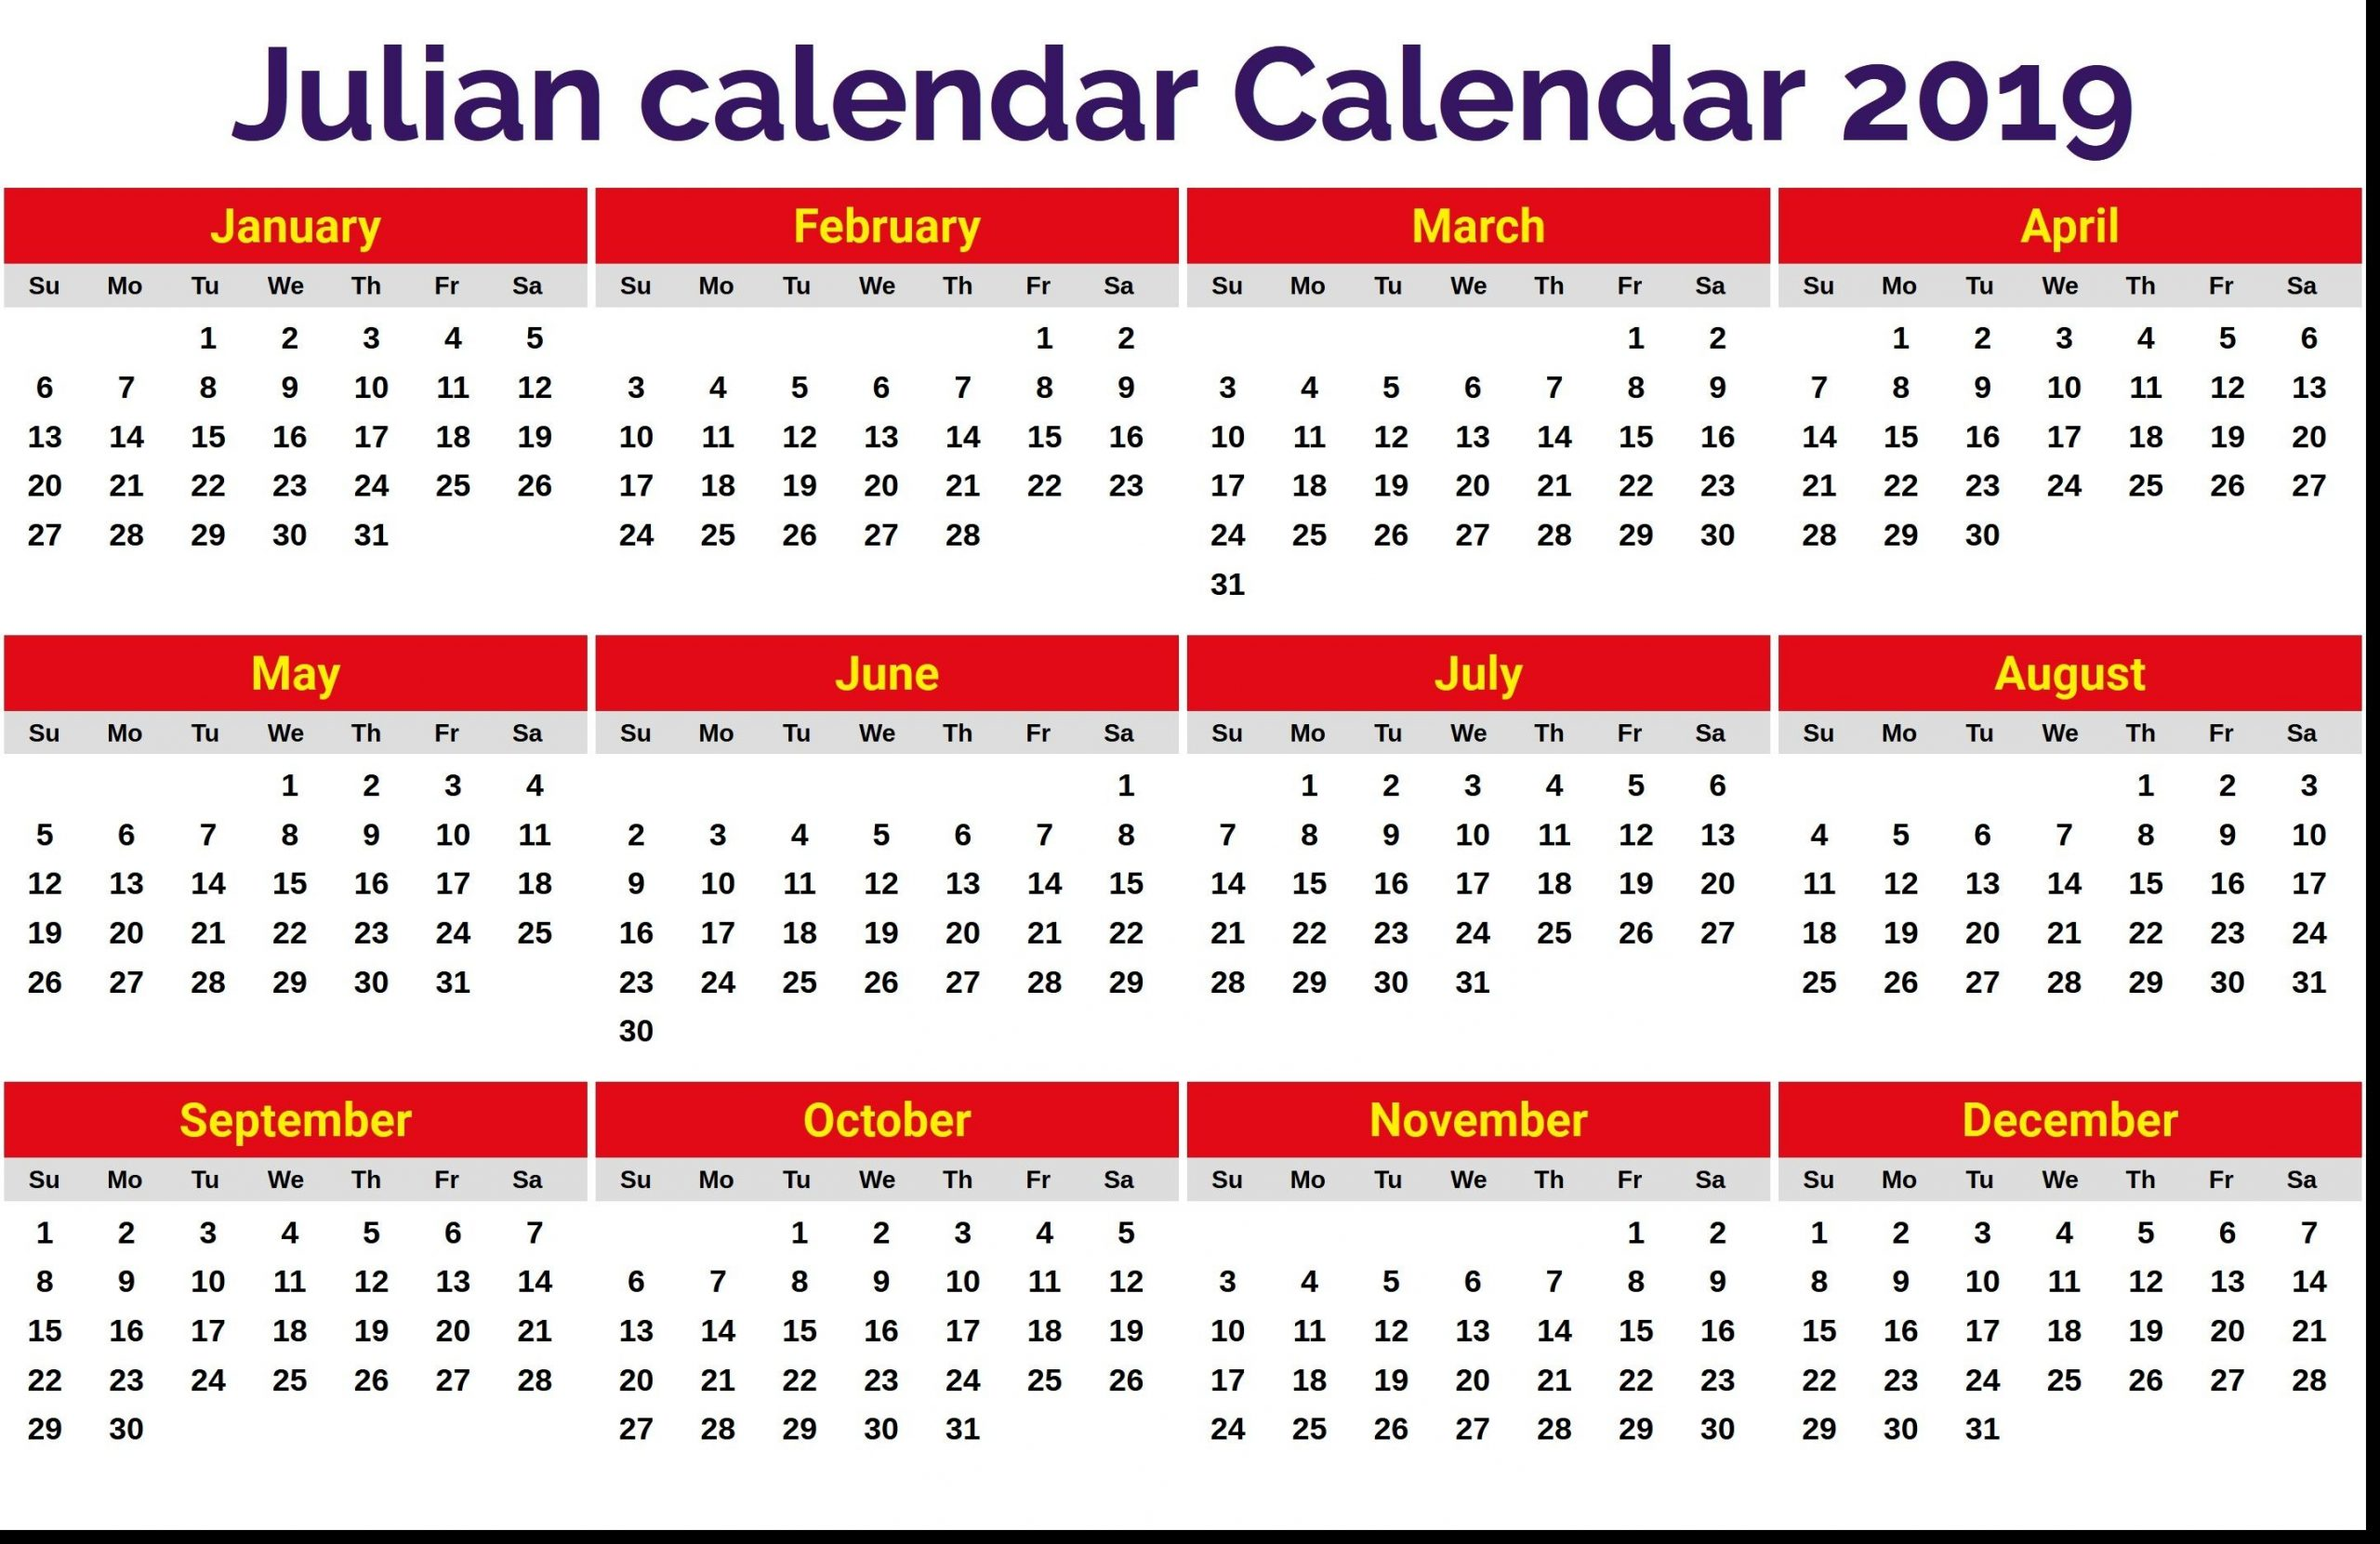 New 2019 Julian Date Calendar Printable | Printable Monthly